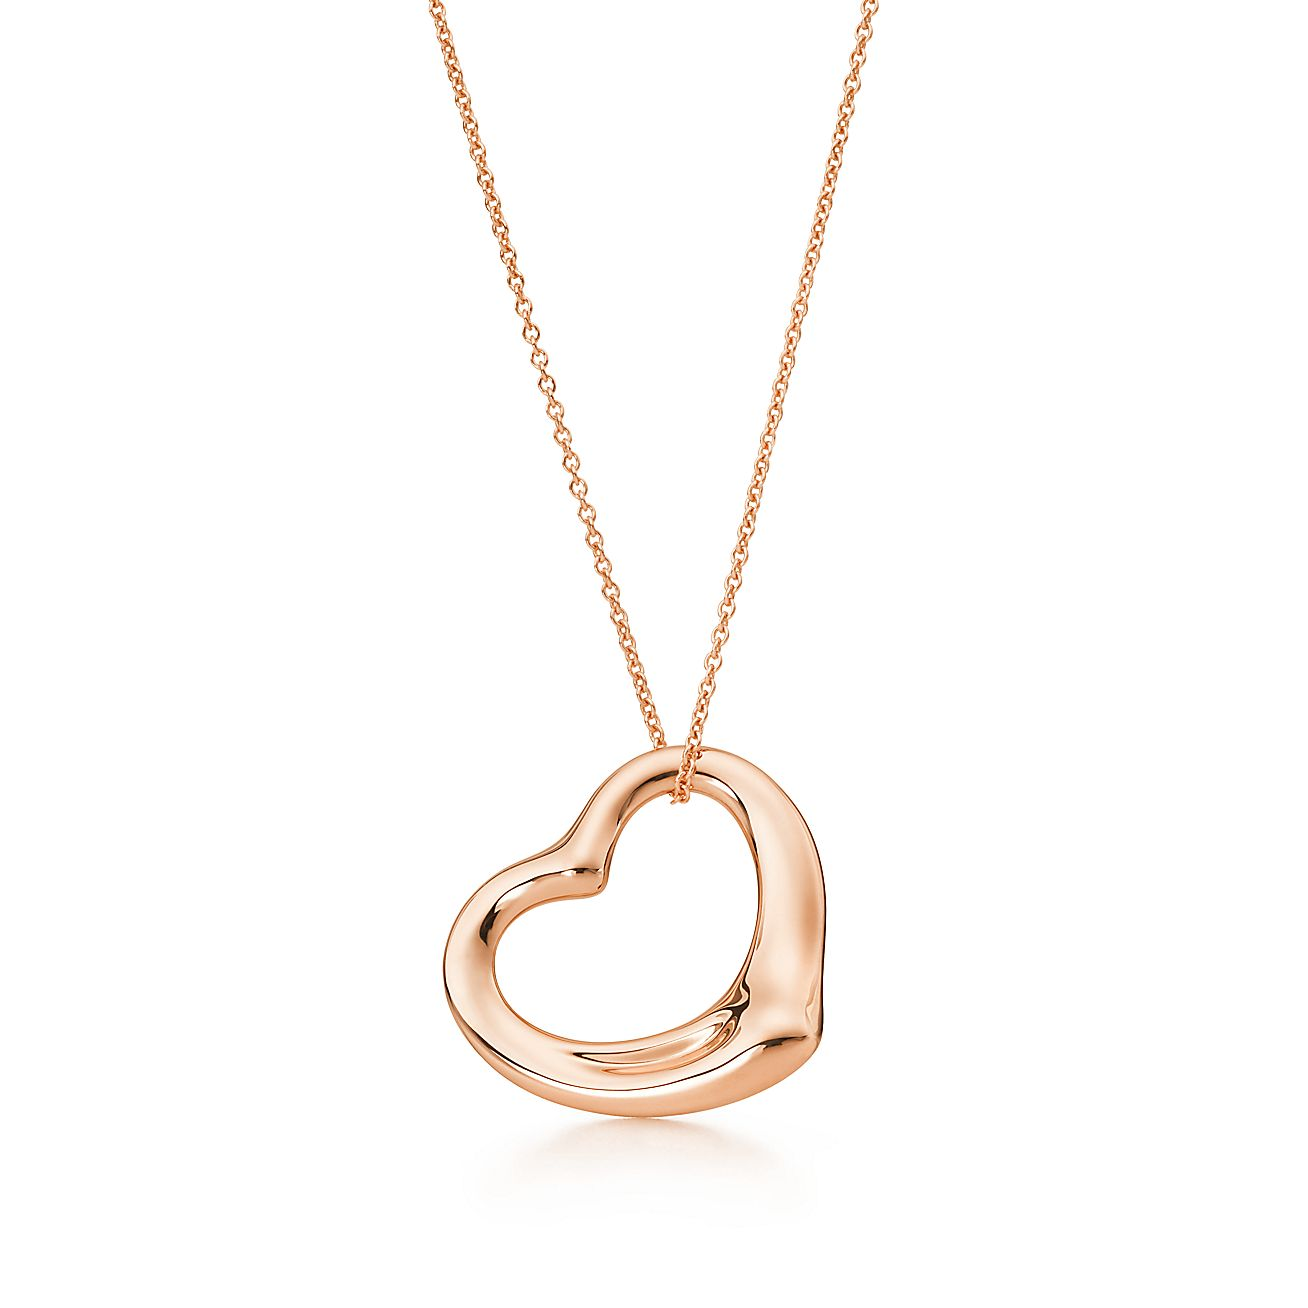 Elsa peretti open heart pendant in 18k rose gold 22 mm tiffany elsa peretti open heart pendant in 18k rose gold 22 mm tiffany co aloadofball Gallery